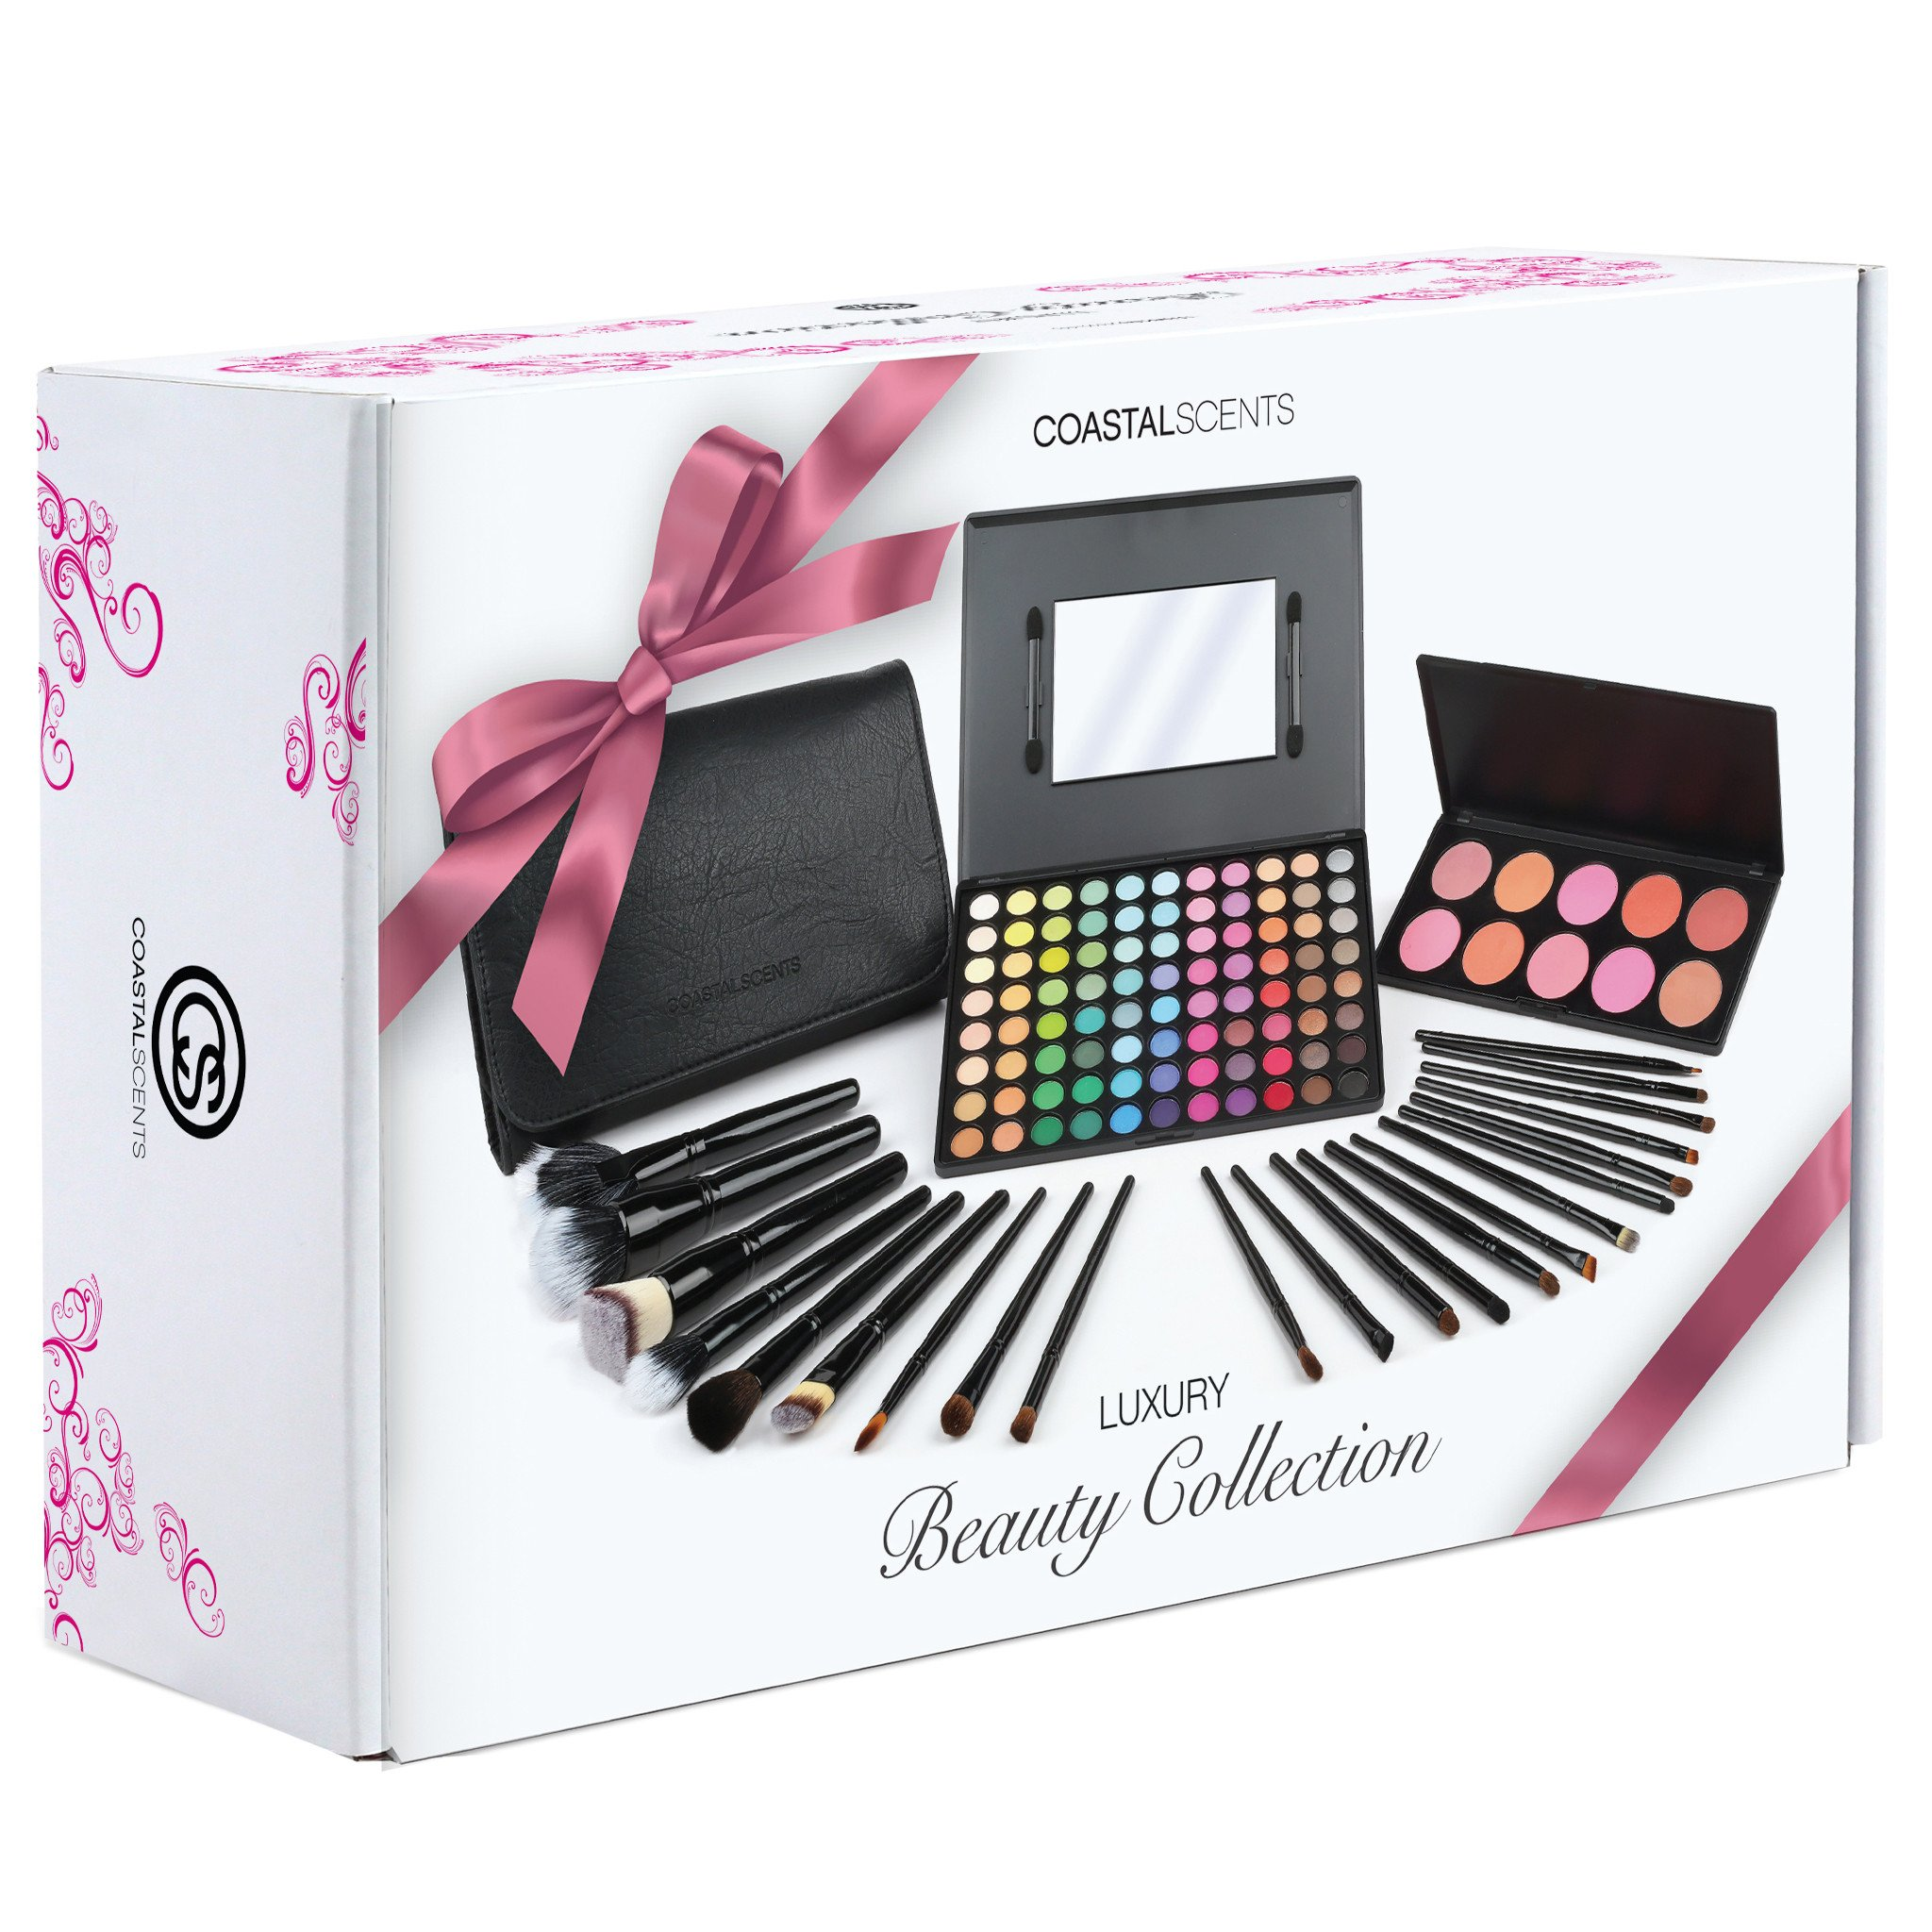 Luxury Beauty Collection Image